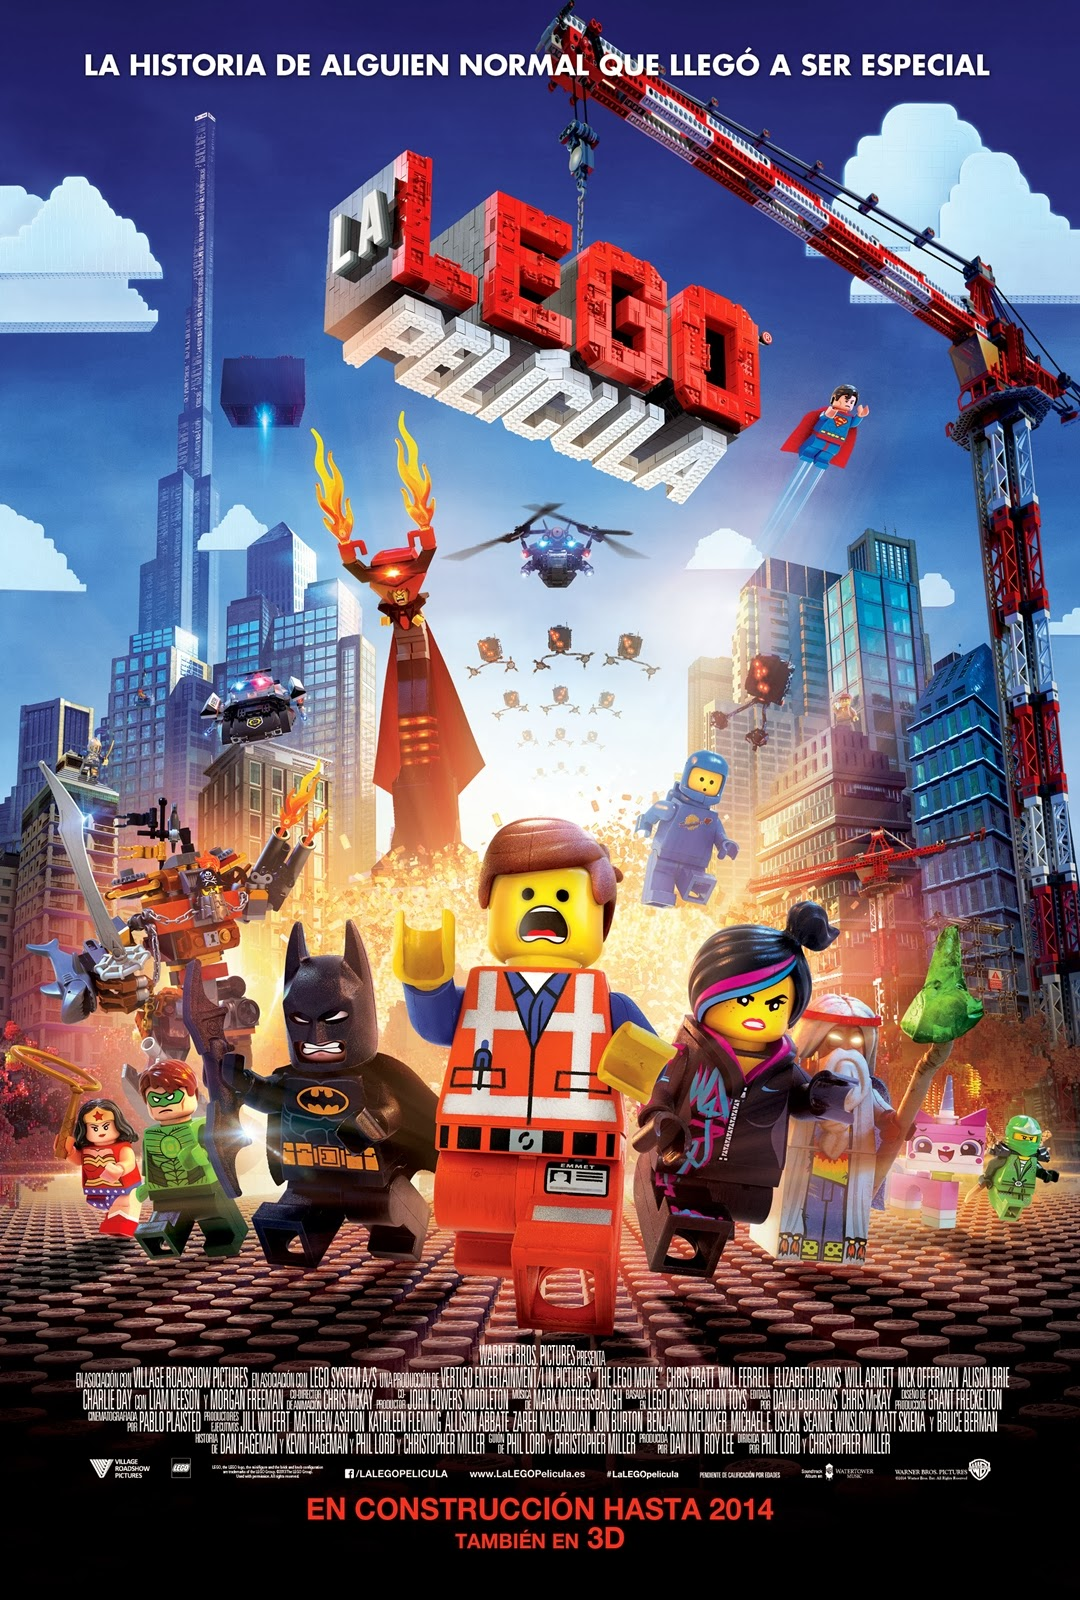 La LEGO película (The LEGO Movie)